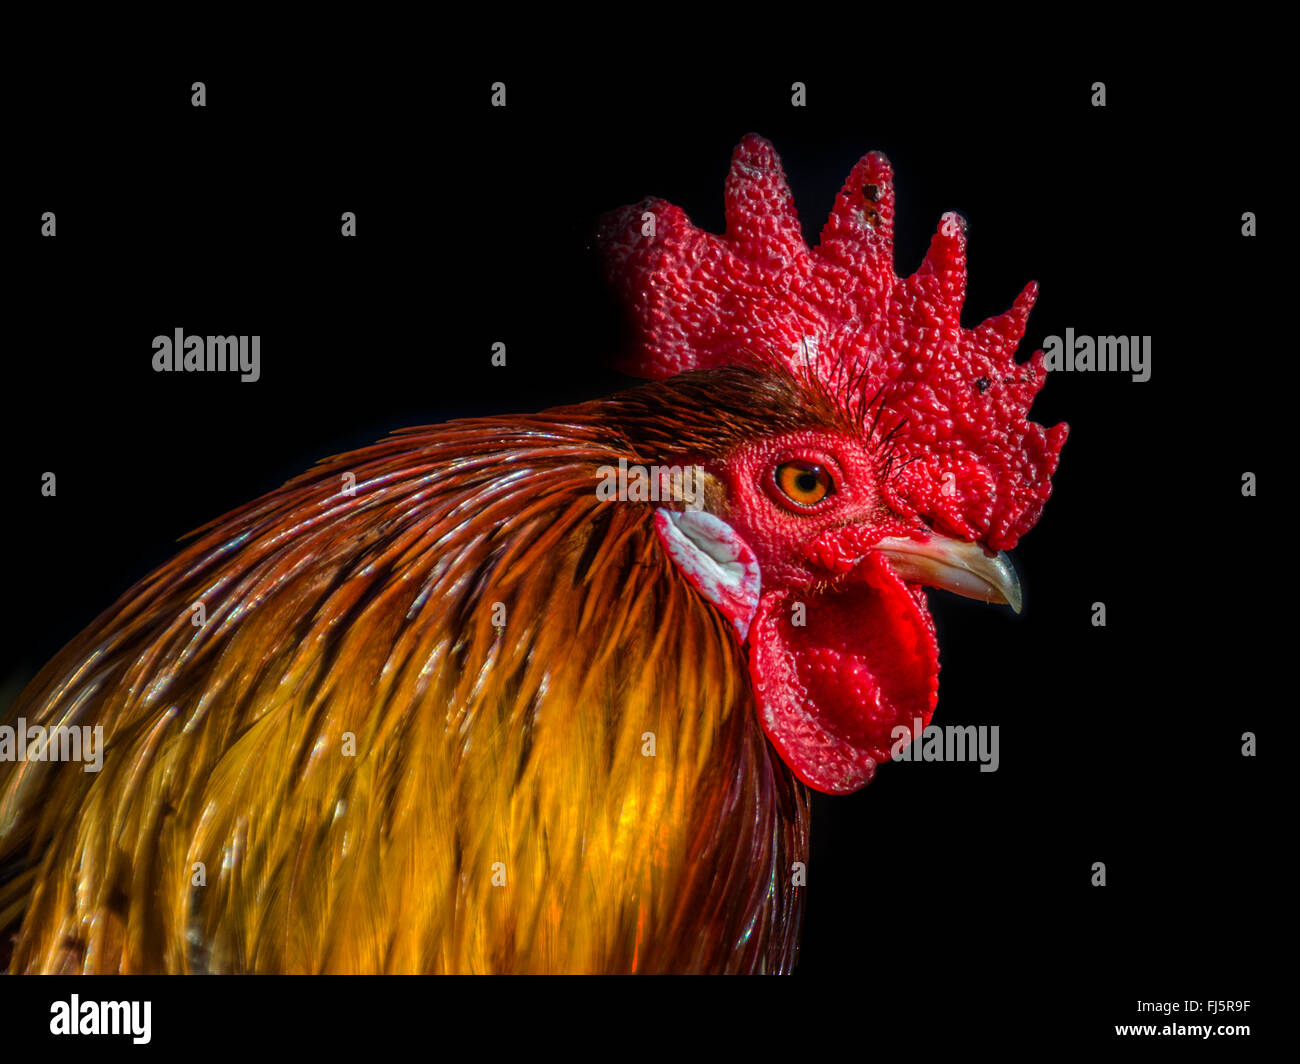 Close up of Rooster's head with black background - Stock Image